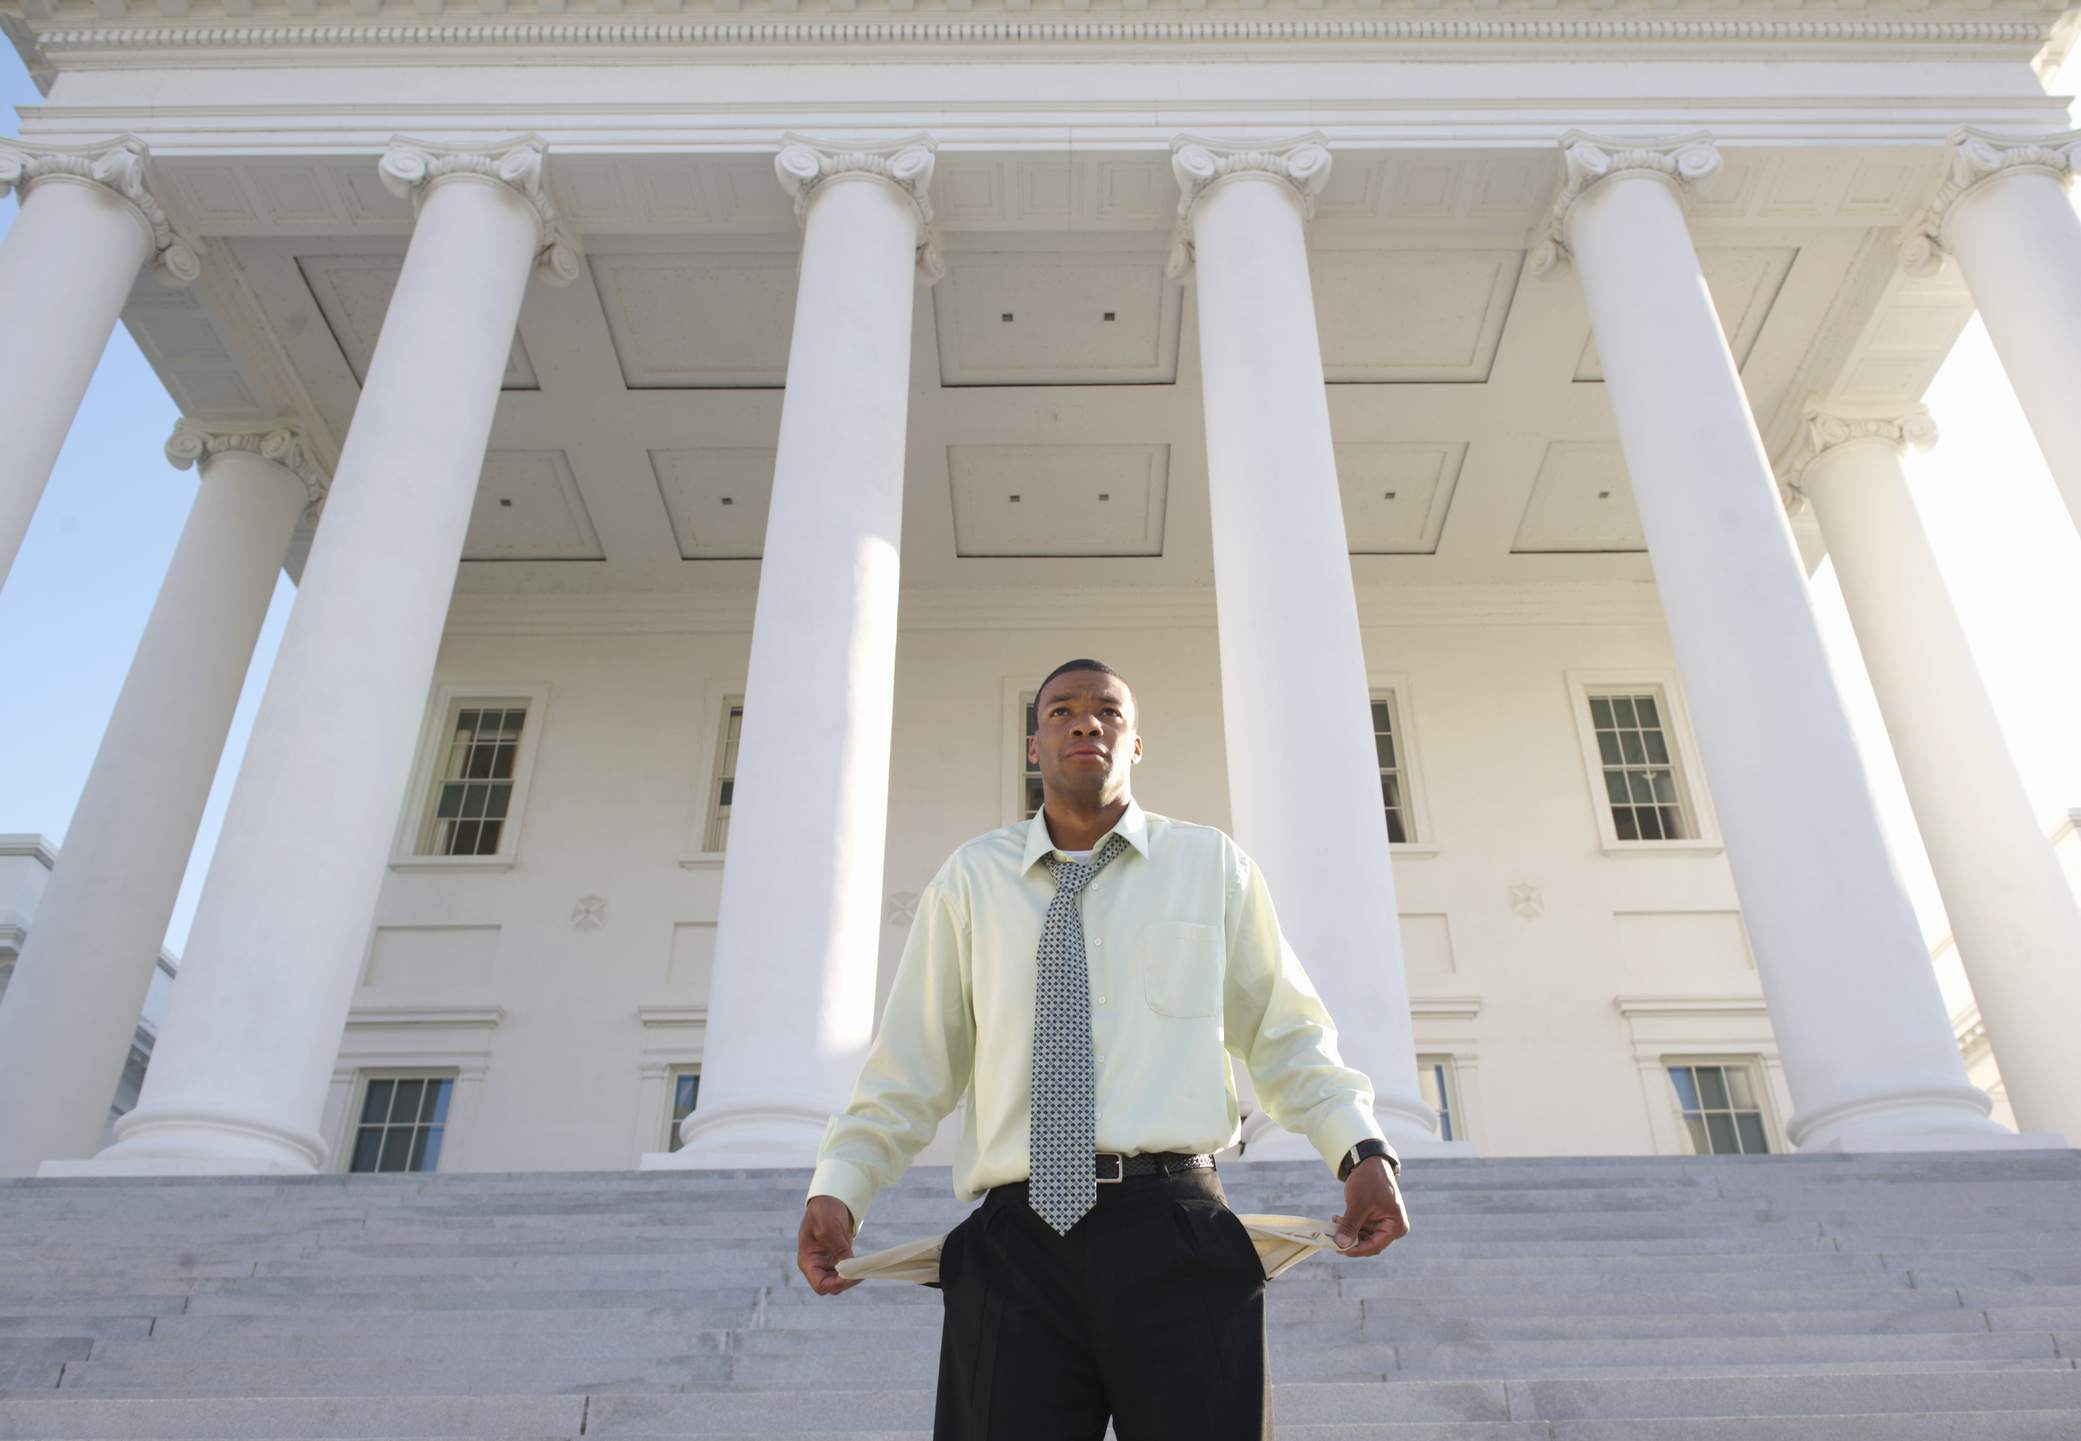 man standing in front of large white pillars showing his empty outurned pockets